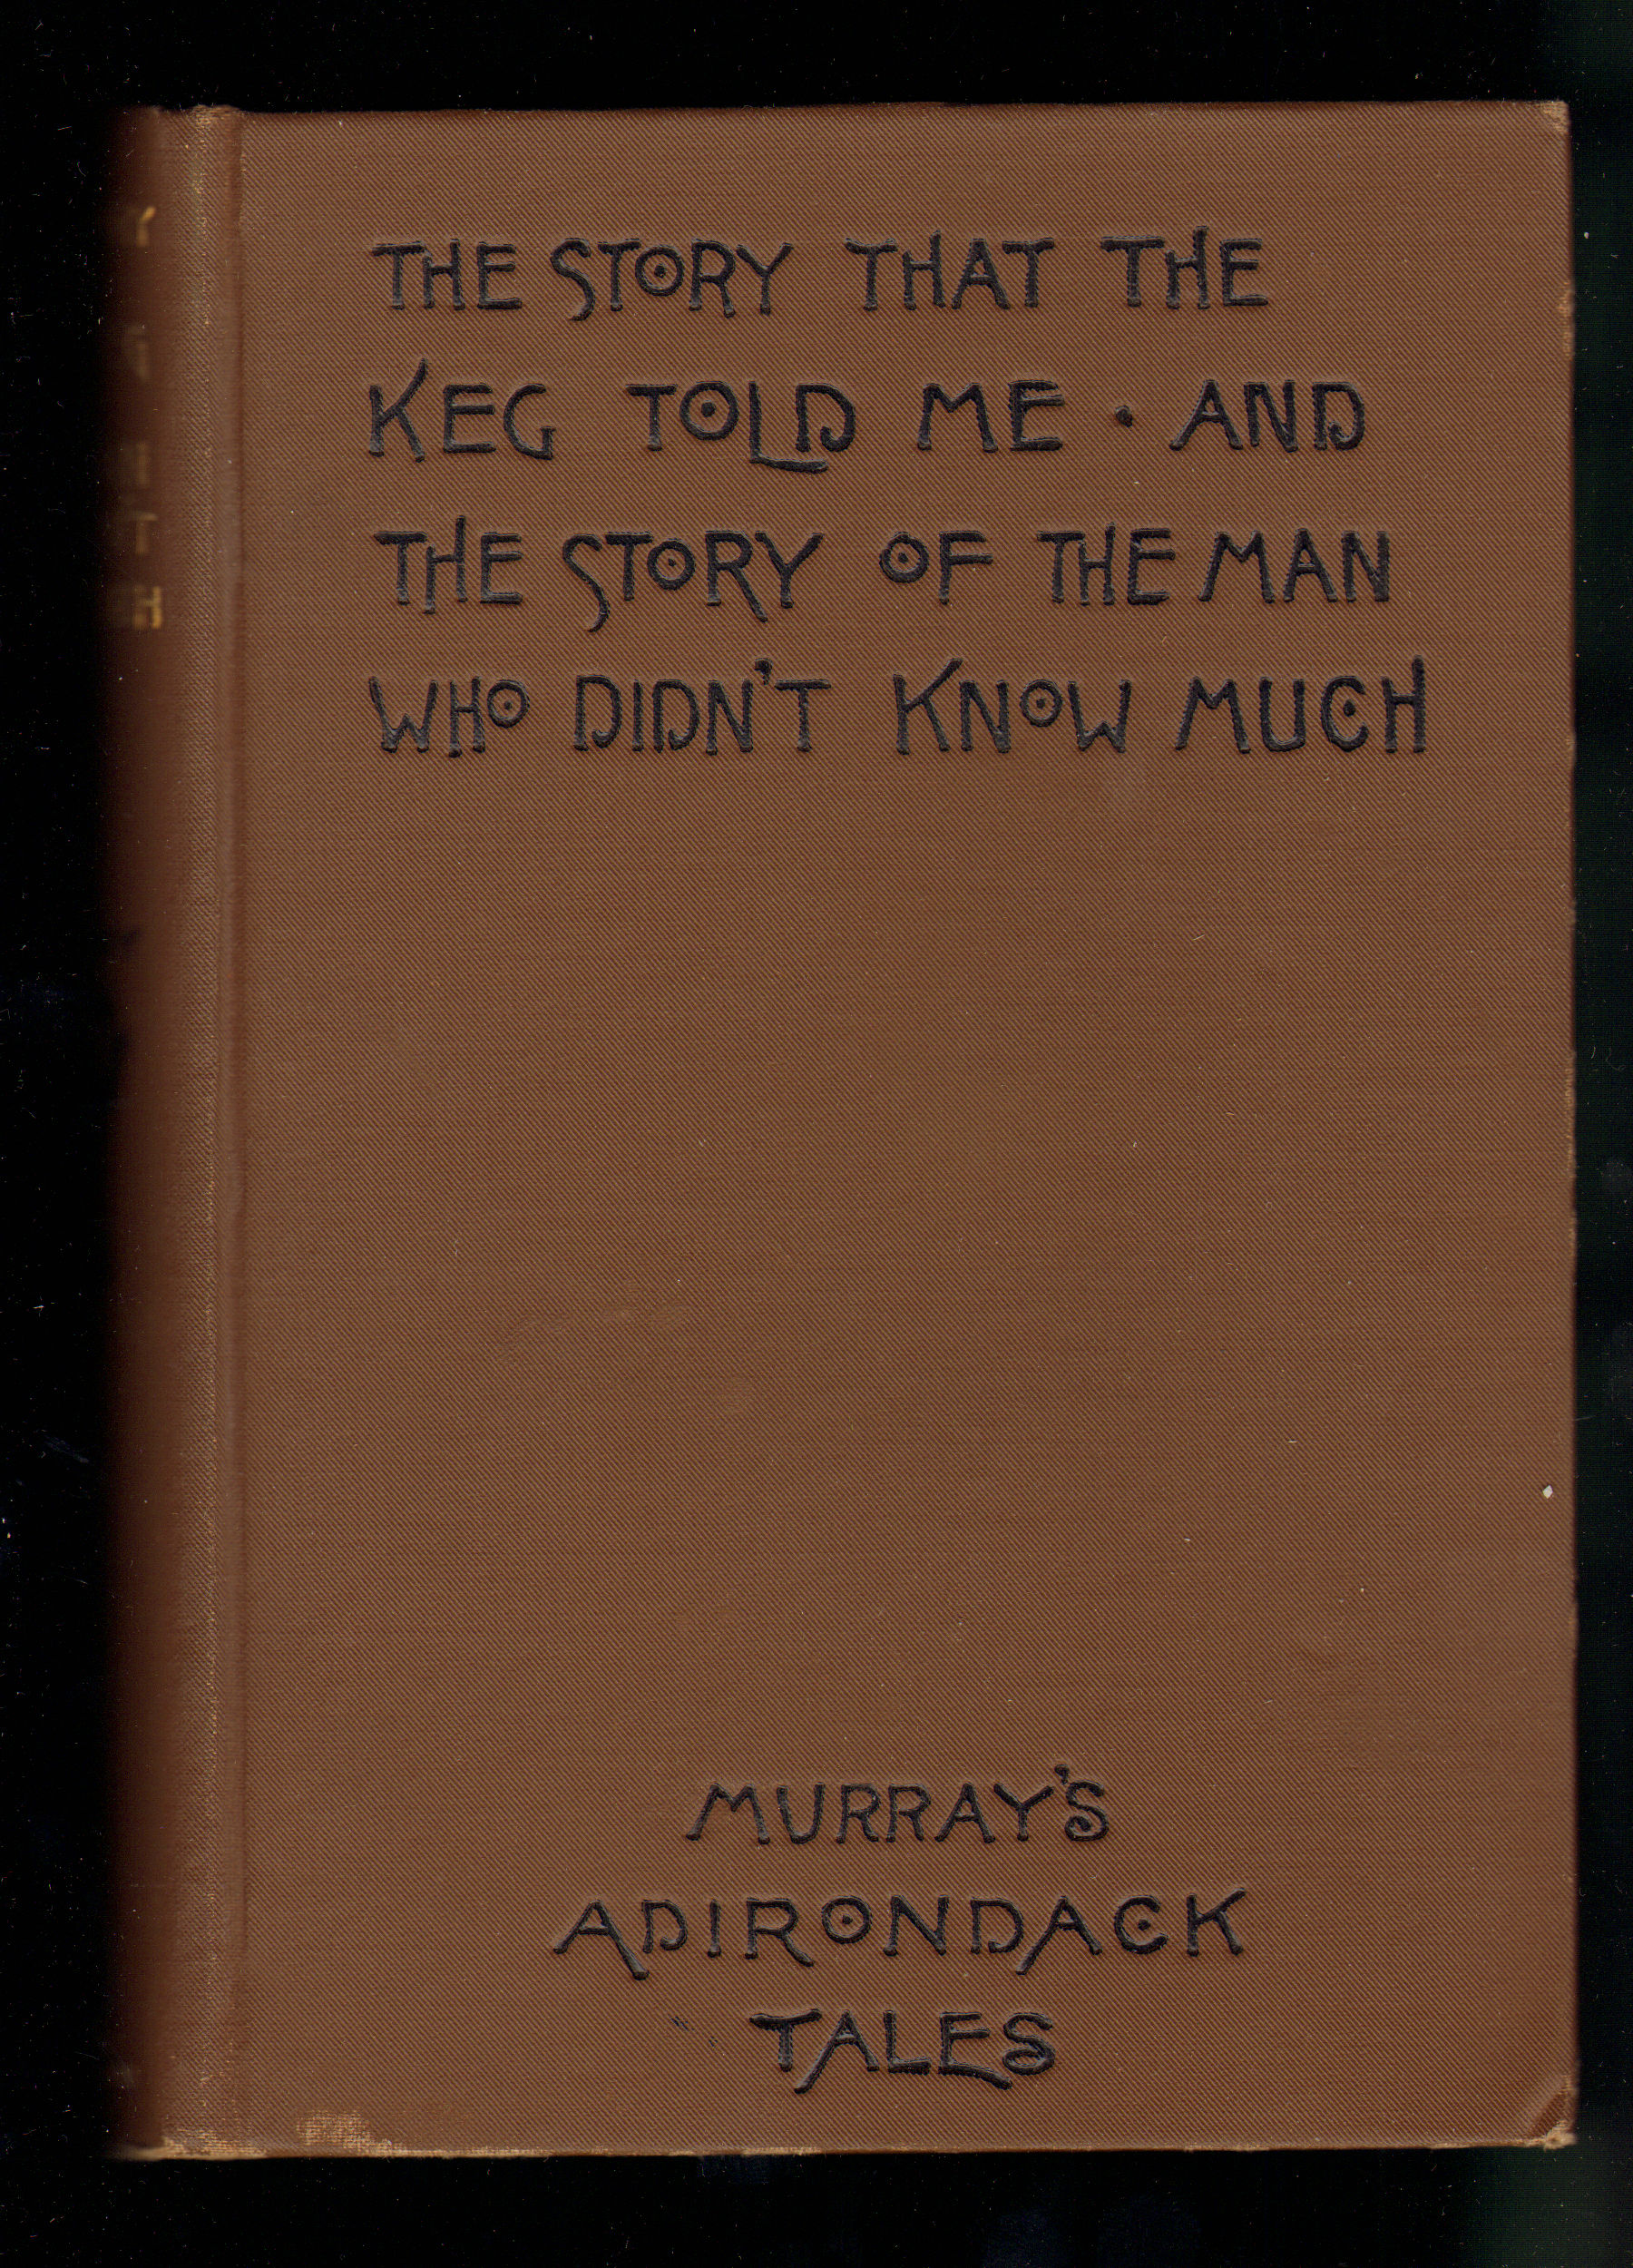 Image for The Story That the Keg Told Me and the Story of the Man Who Didn't Know Much (Murray's Adirondack Tales vol. 1)